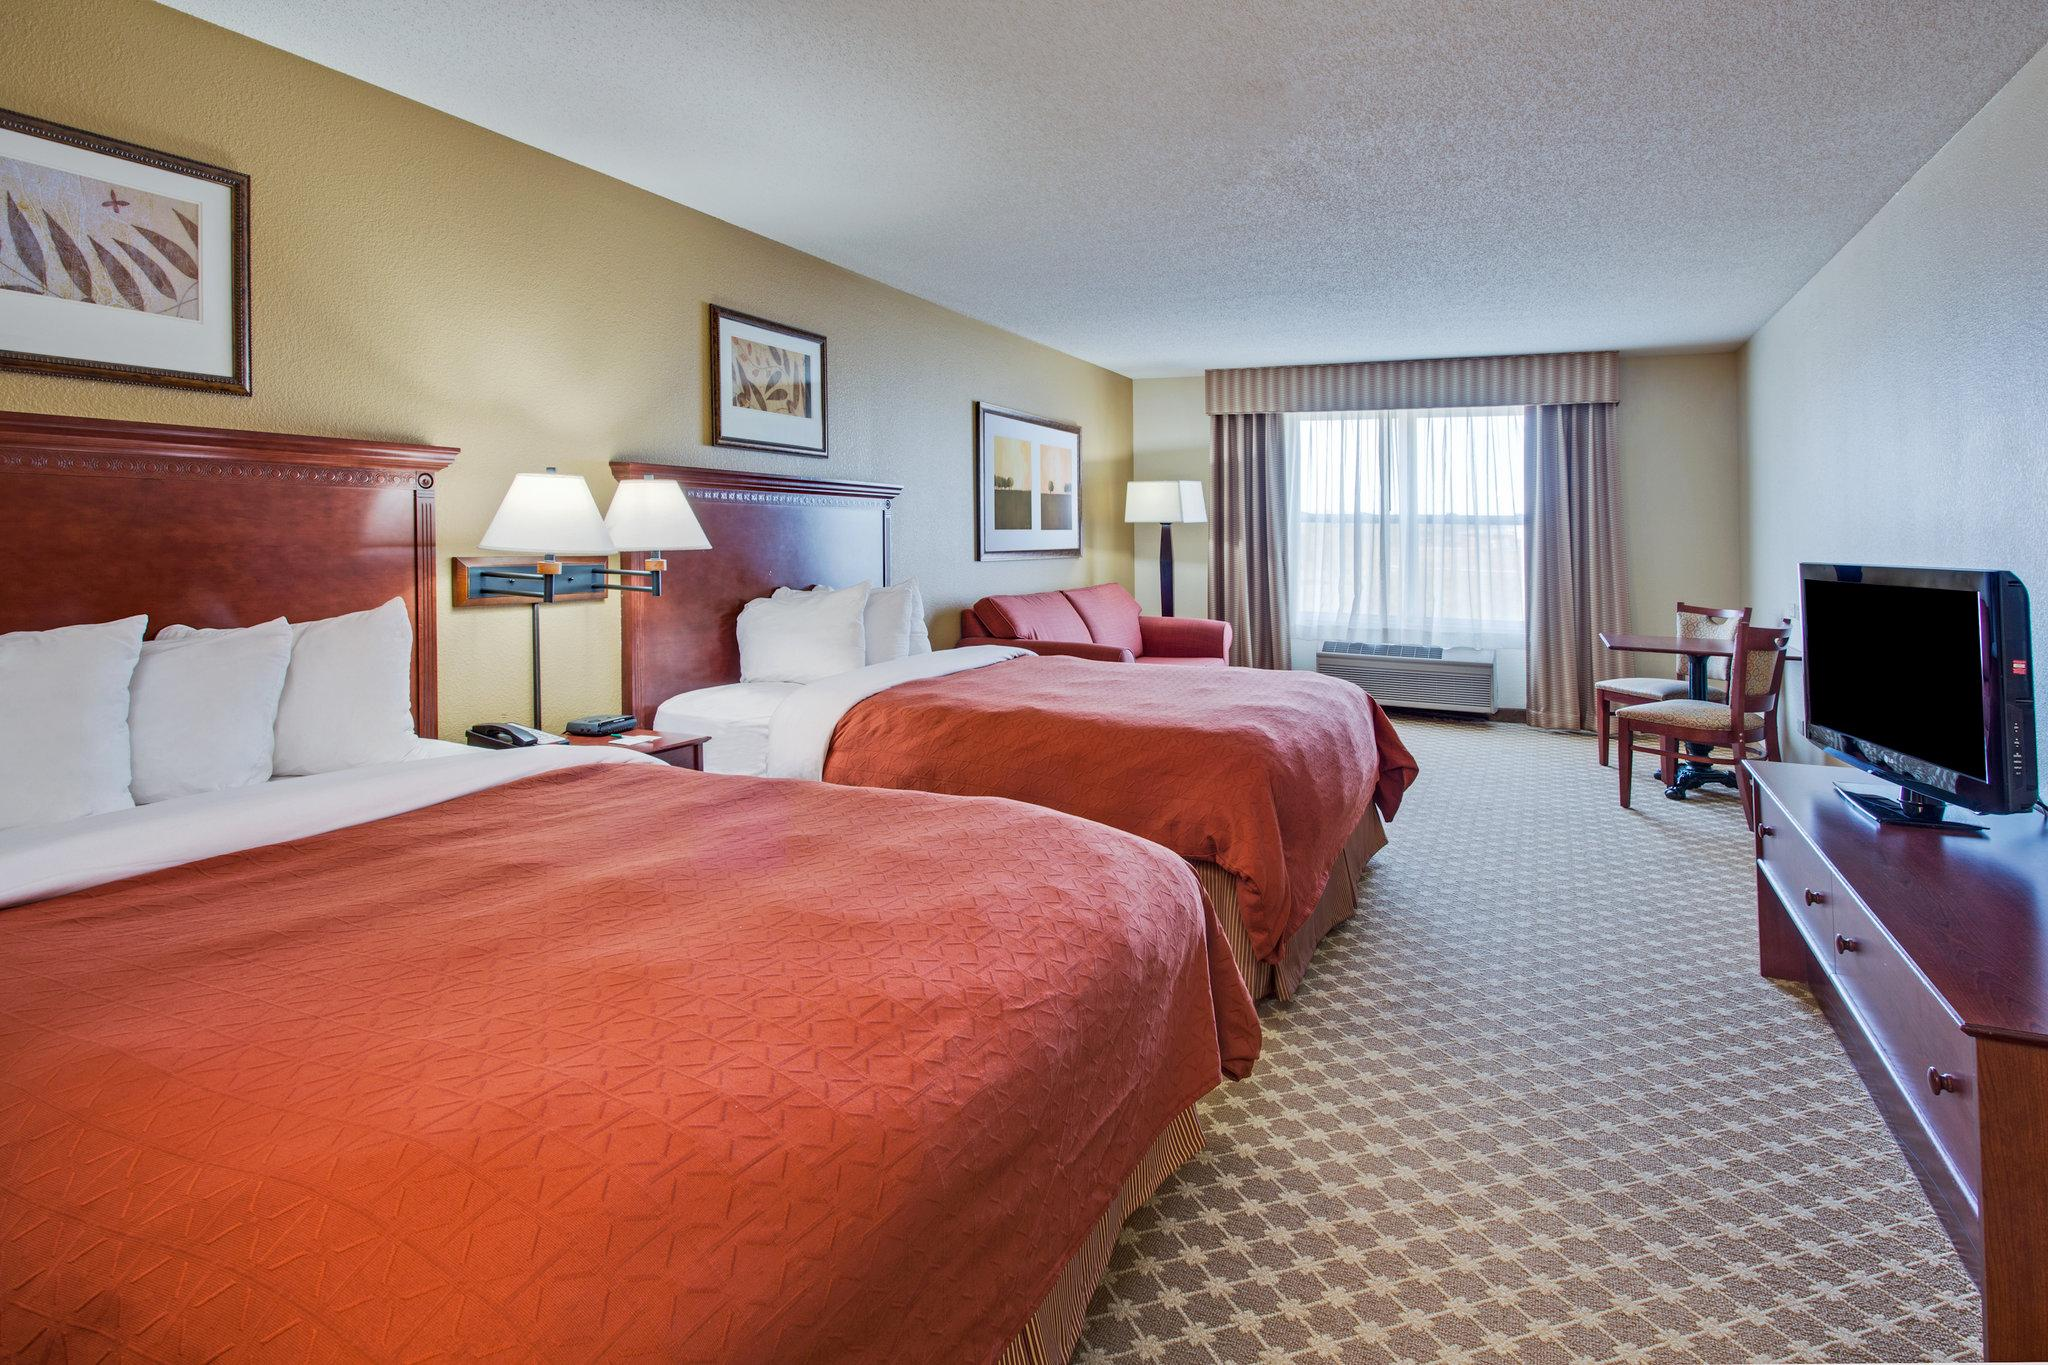 Country Inn & Suites By Carlson, Crystal Lake